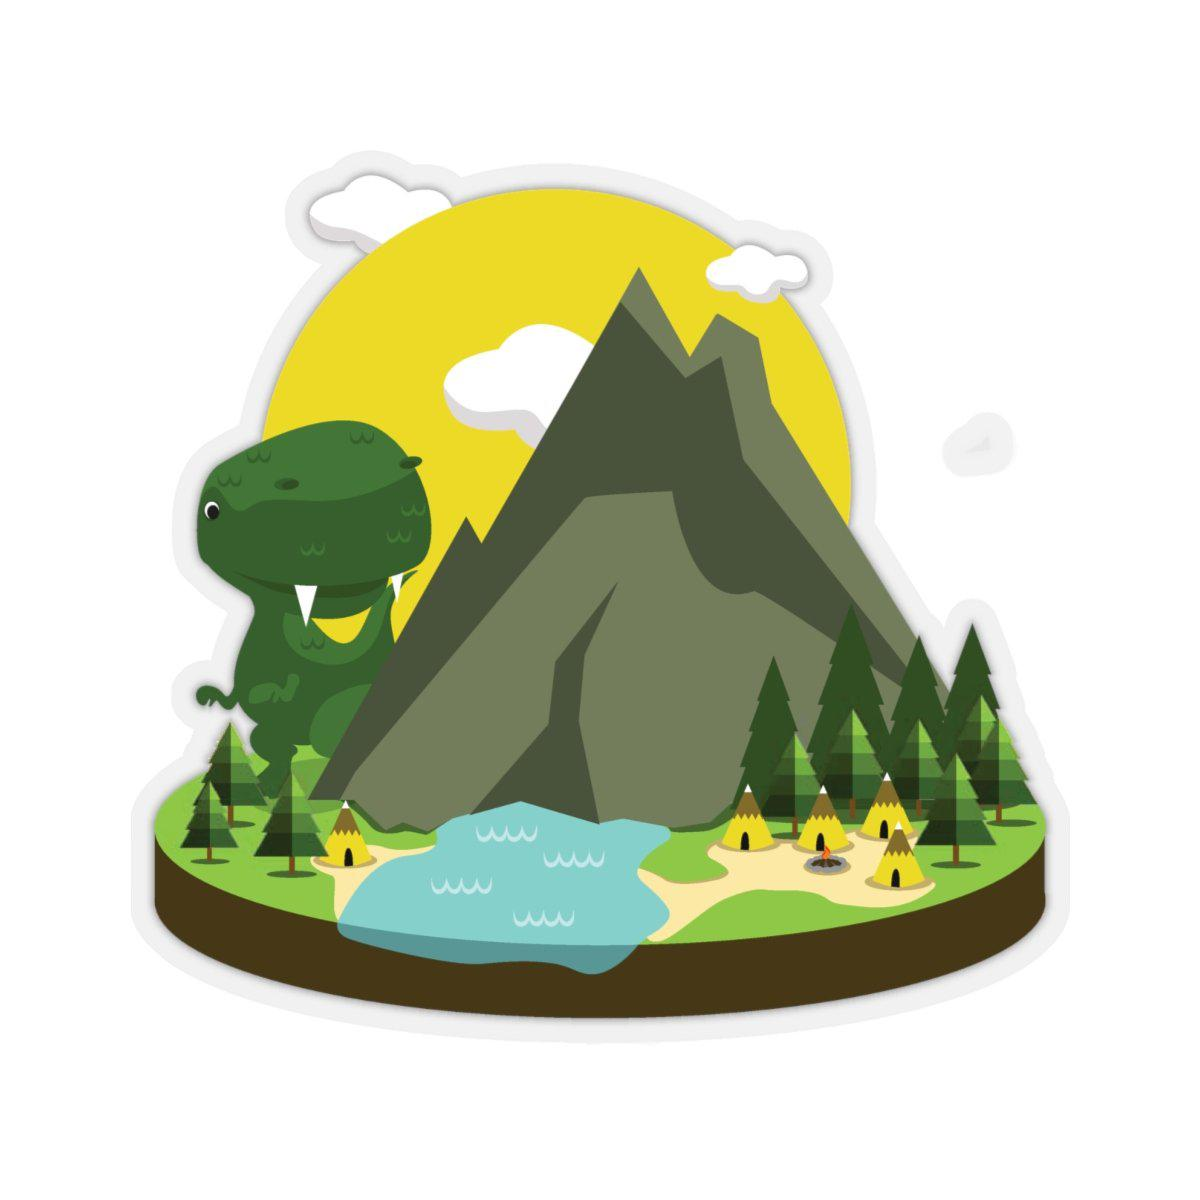 Dinosaur sticker with T-Rex peaking around a mountain looking over native american teepees.